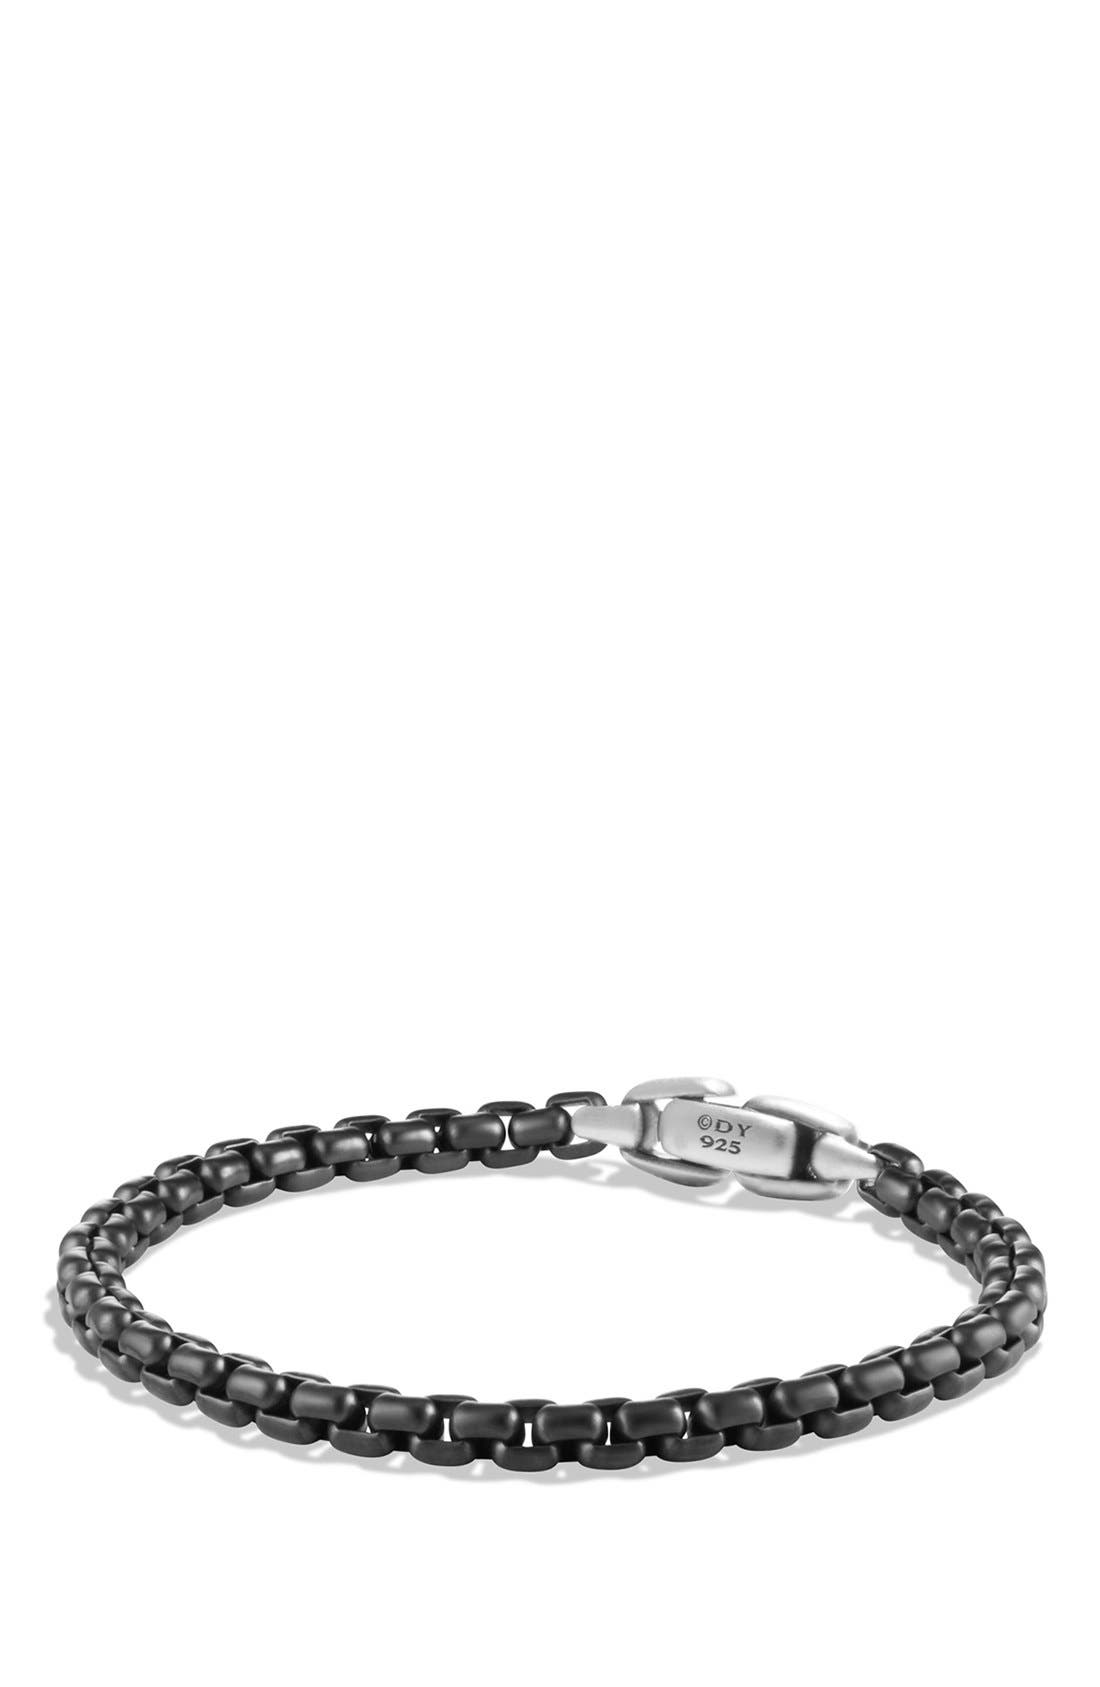 DAVID YURMAN Box Chain Bracelet, Main, color, STAINLESS STEEL